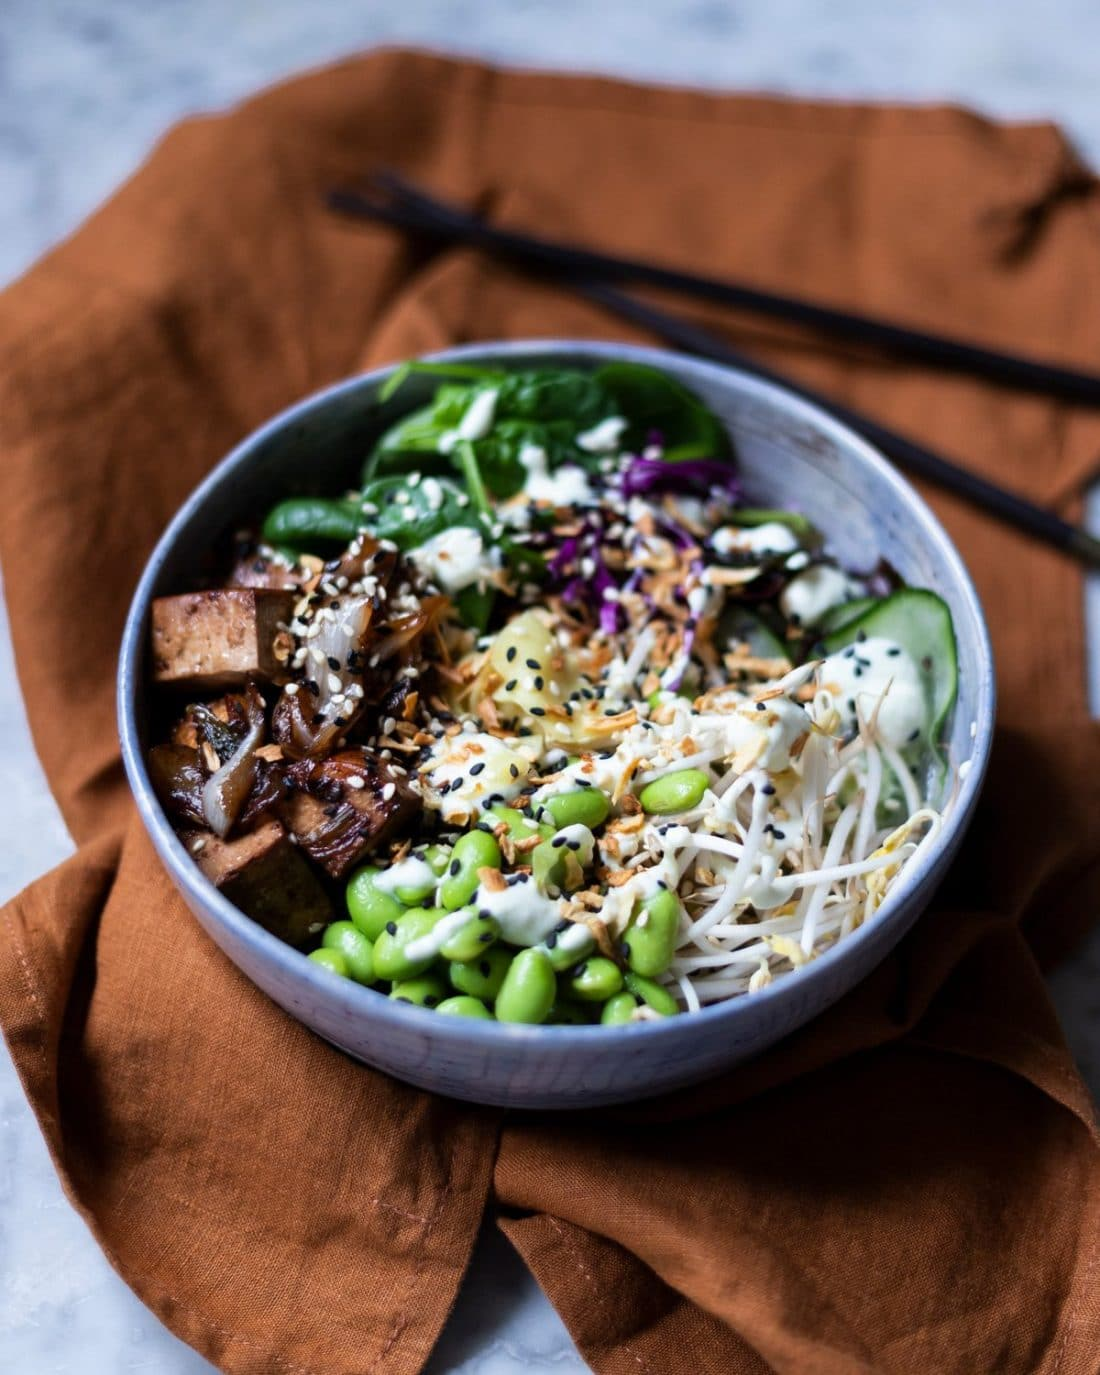 FGiovannini_The_Bluebird_Kitchen_bowl_con_tofu_2